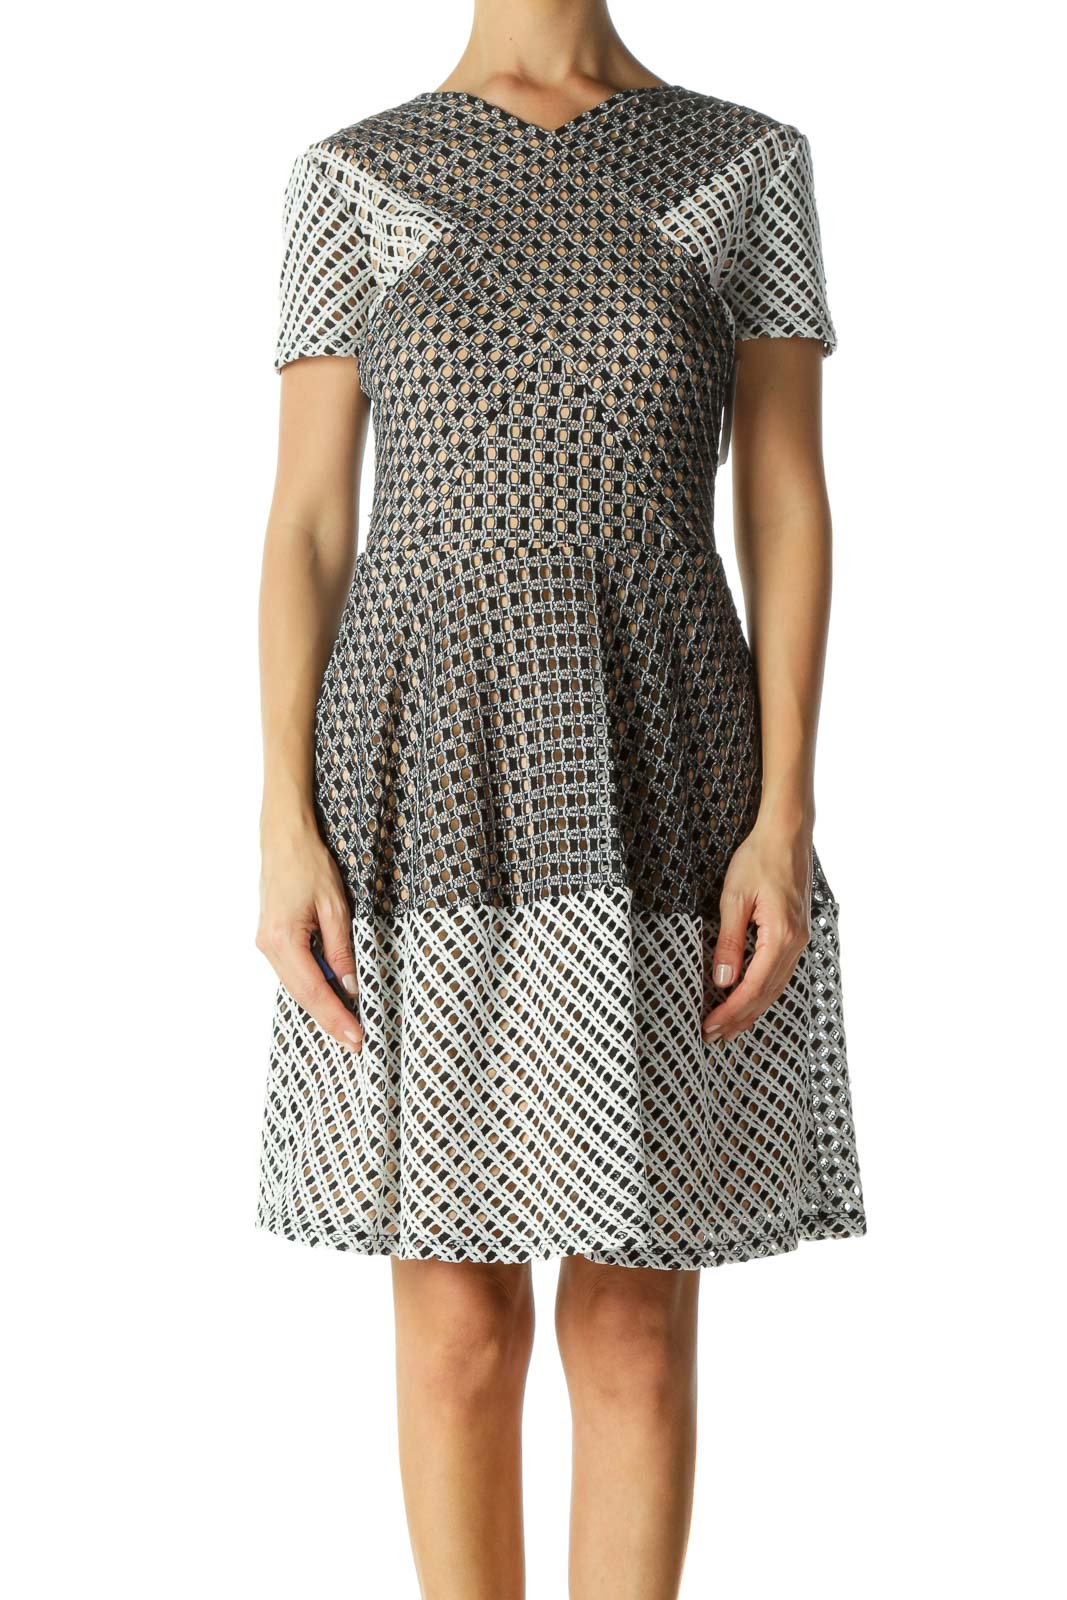 Beige Black White Mixed-Textured-Knit Flared Cocktail Dress